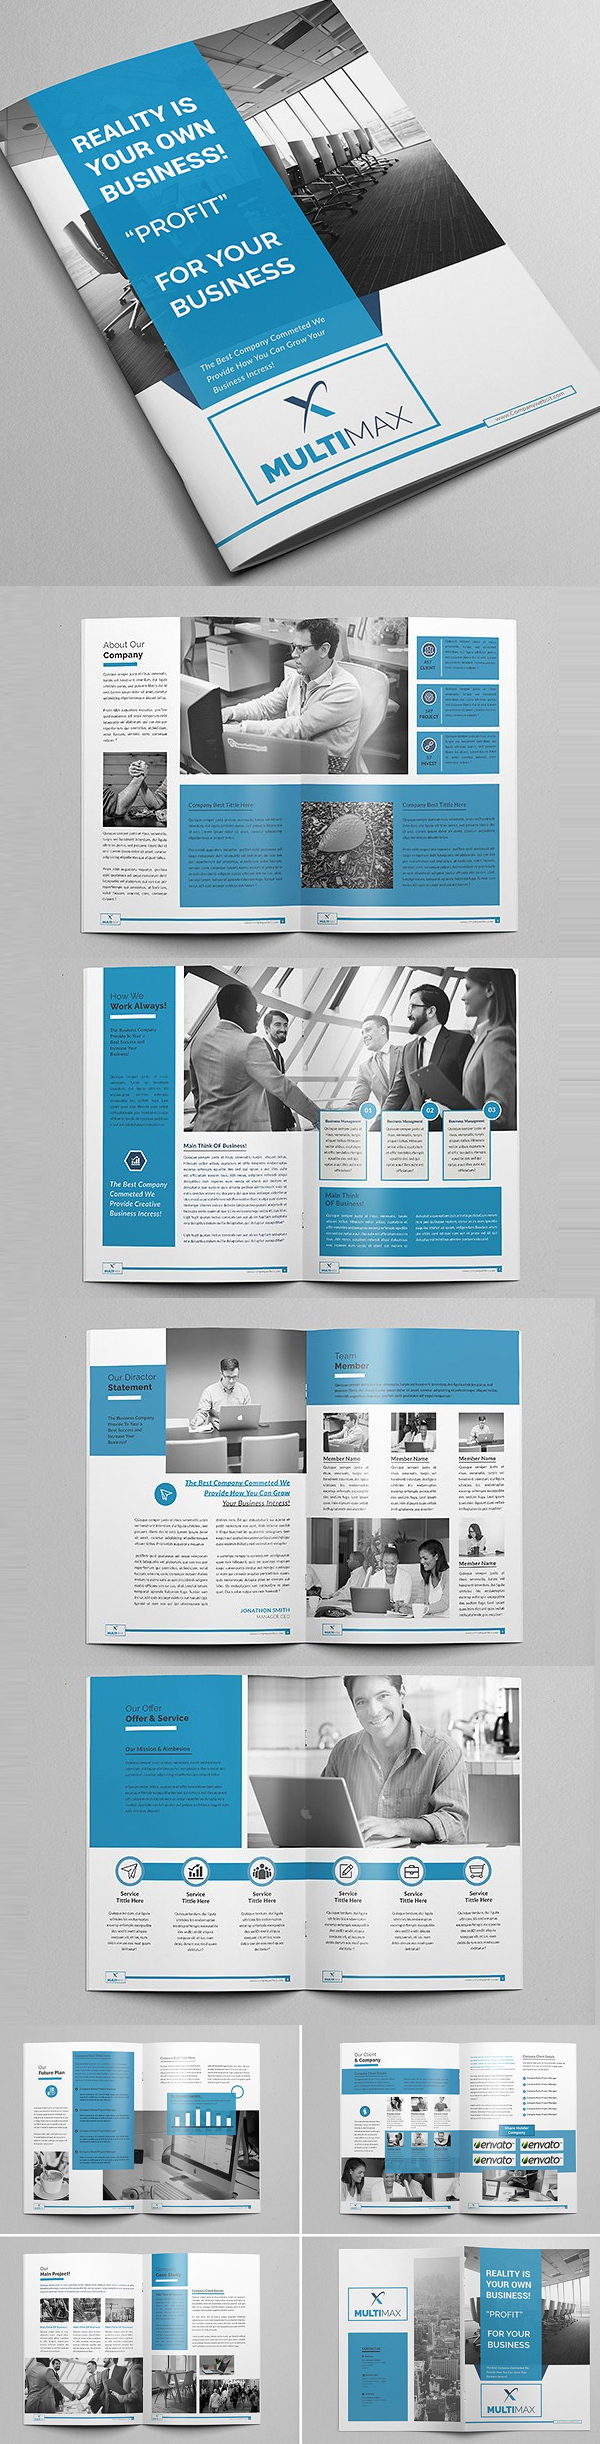 New Brochure Templates Catalog Design Design Graphic Design - 8 page brochure template